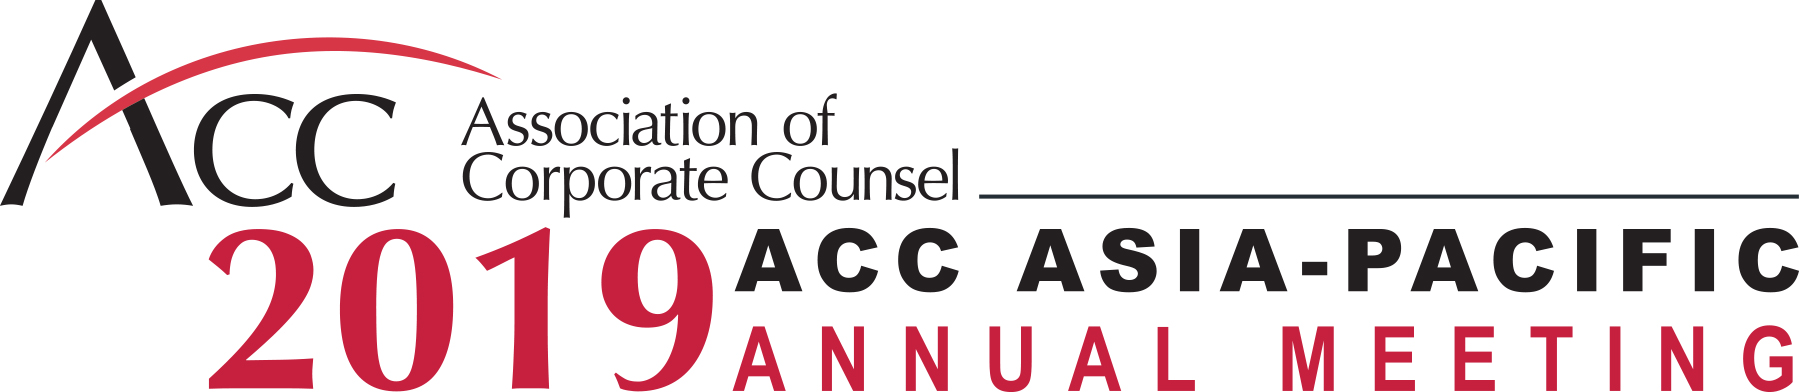 ACC ASIA-PACIFIC 2019 ANNUAL MEETING